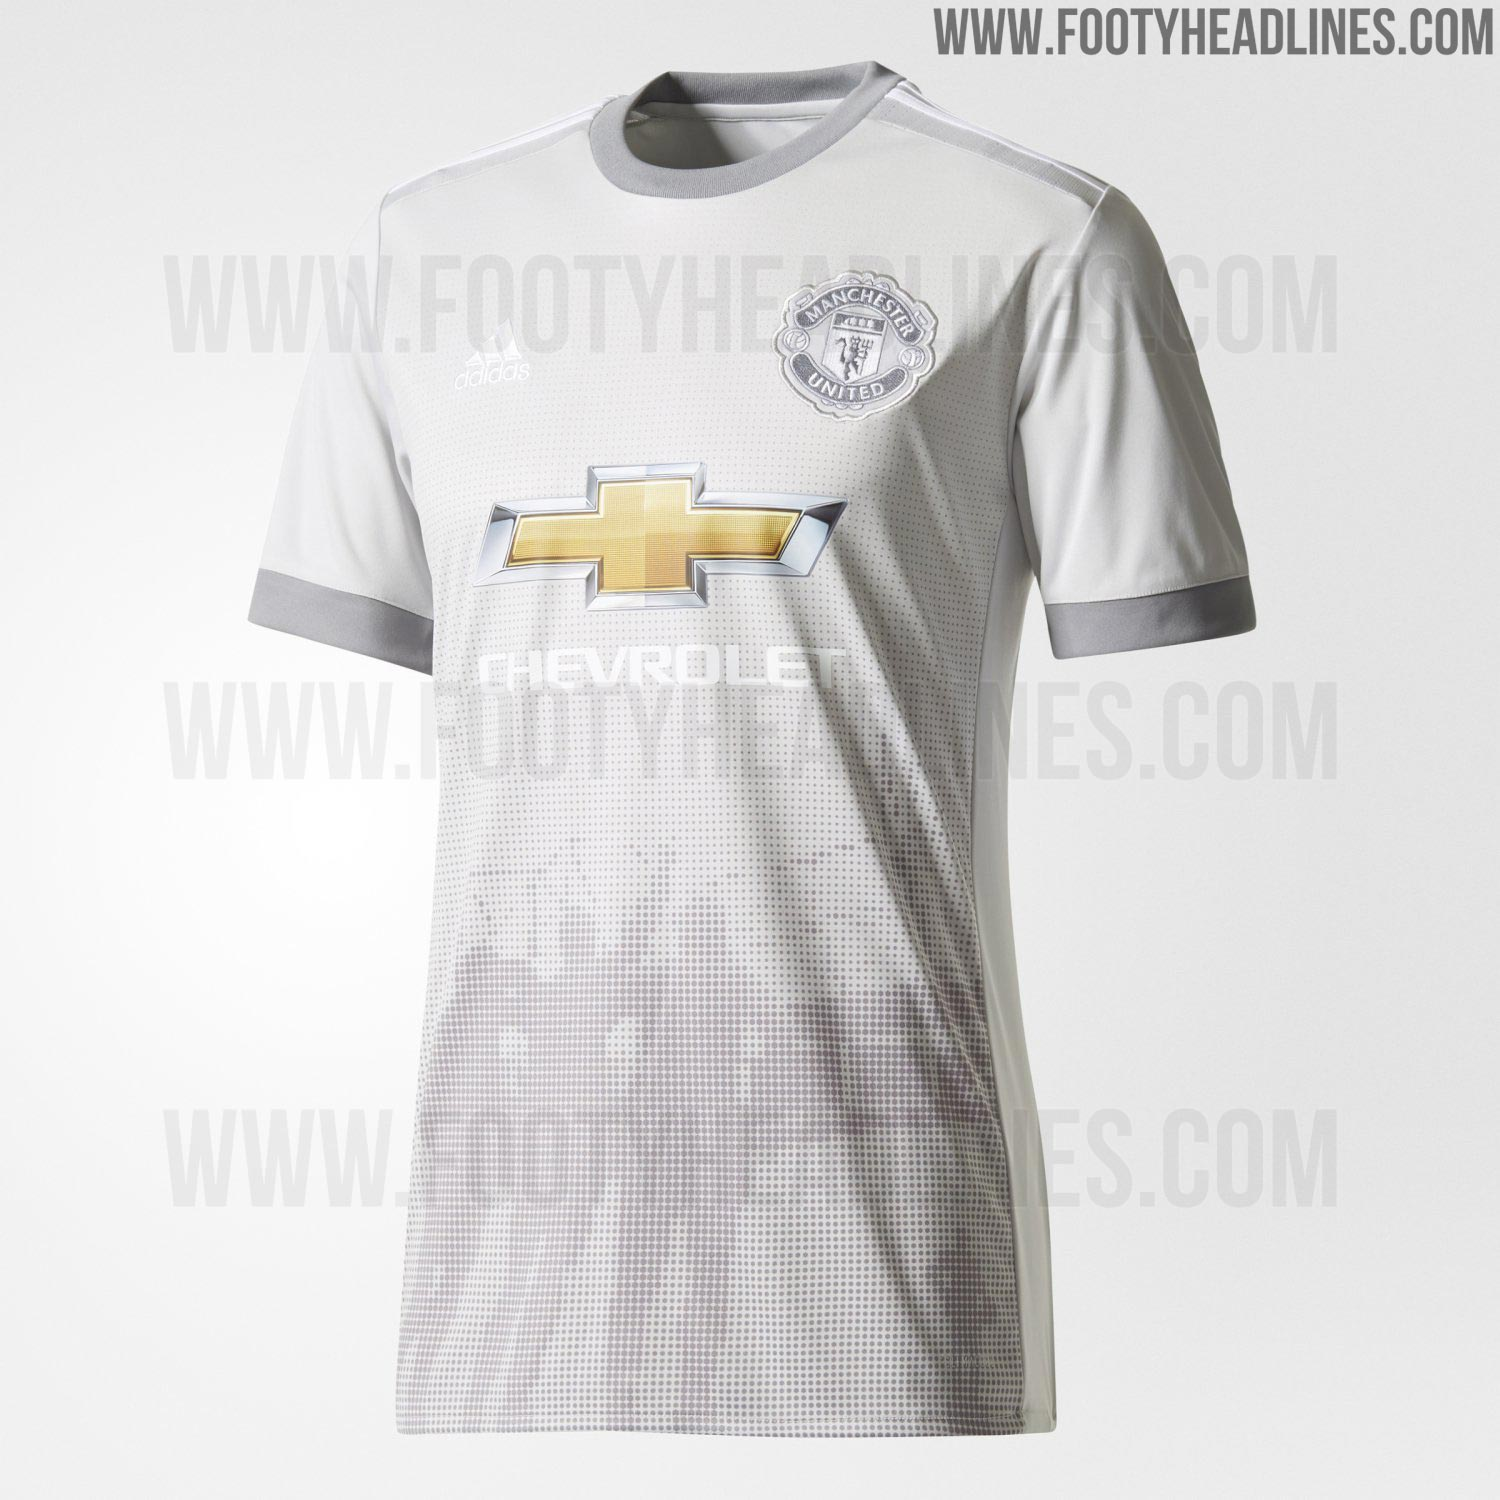 Manchester United 17-18 Third Kit Released - Footy Headlines